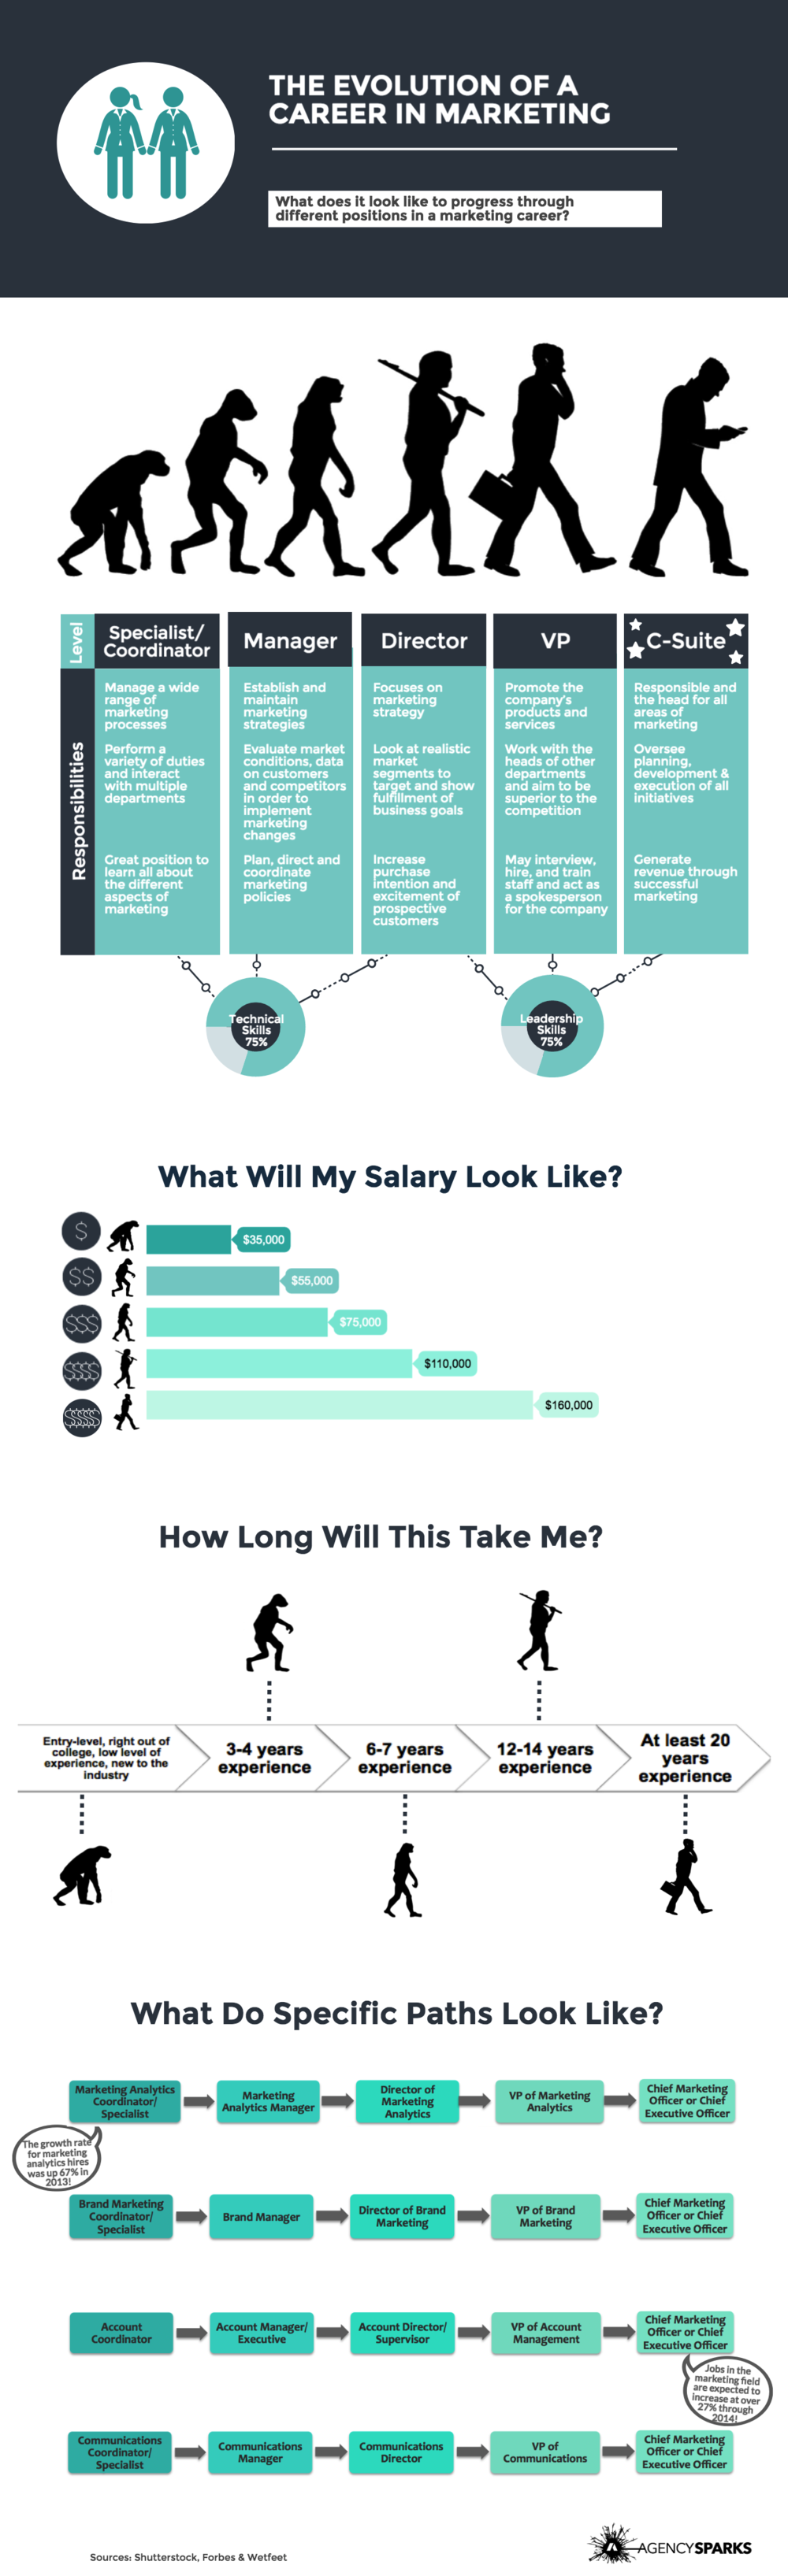 Marketing Career Path - Infographic  When entering the job market after graduation, many students are unaware of how they will progress through a career in marketing. The evolution of a marketing career generally involves 5 different position levels; coordinator/specialist, manager, director, VP, and C-Suite. More technical skills are required towards the beginning or your marketing career and more leadership skills are needed as you progress through your career path. Salaries will range from roughly $35,000 to $160,000. Generally, it will take around 20 years of experience to get to the C-Suite level. Learn more about responsibilities for each level, salaries, job length, and sample career paths above!